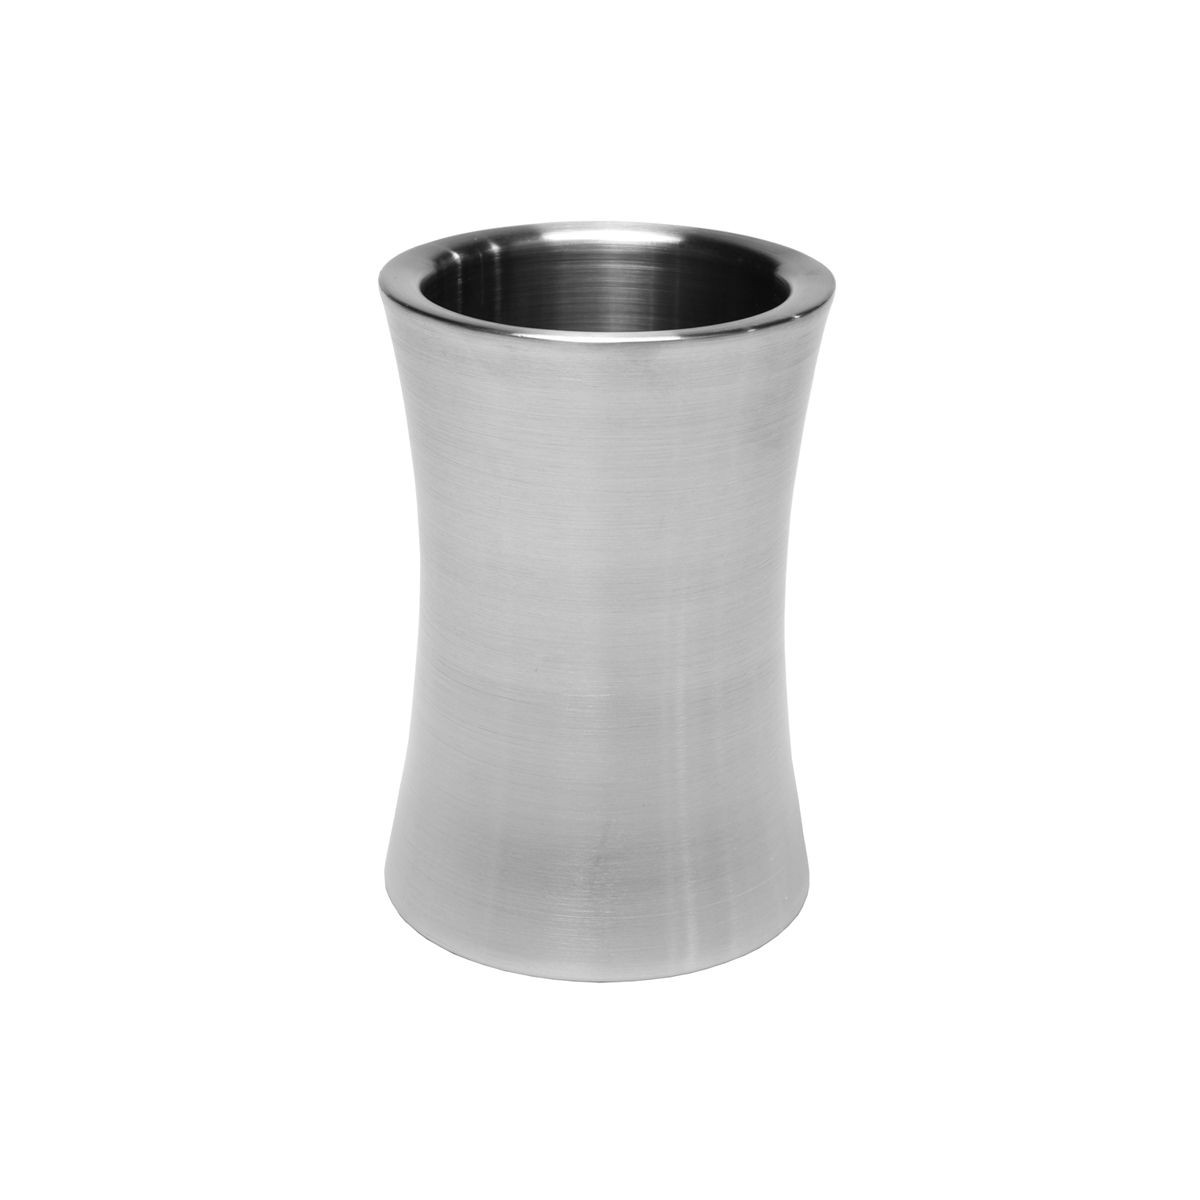 Service Ideas WC3C Brushed Stainless Steel Curved Wine Chiller